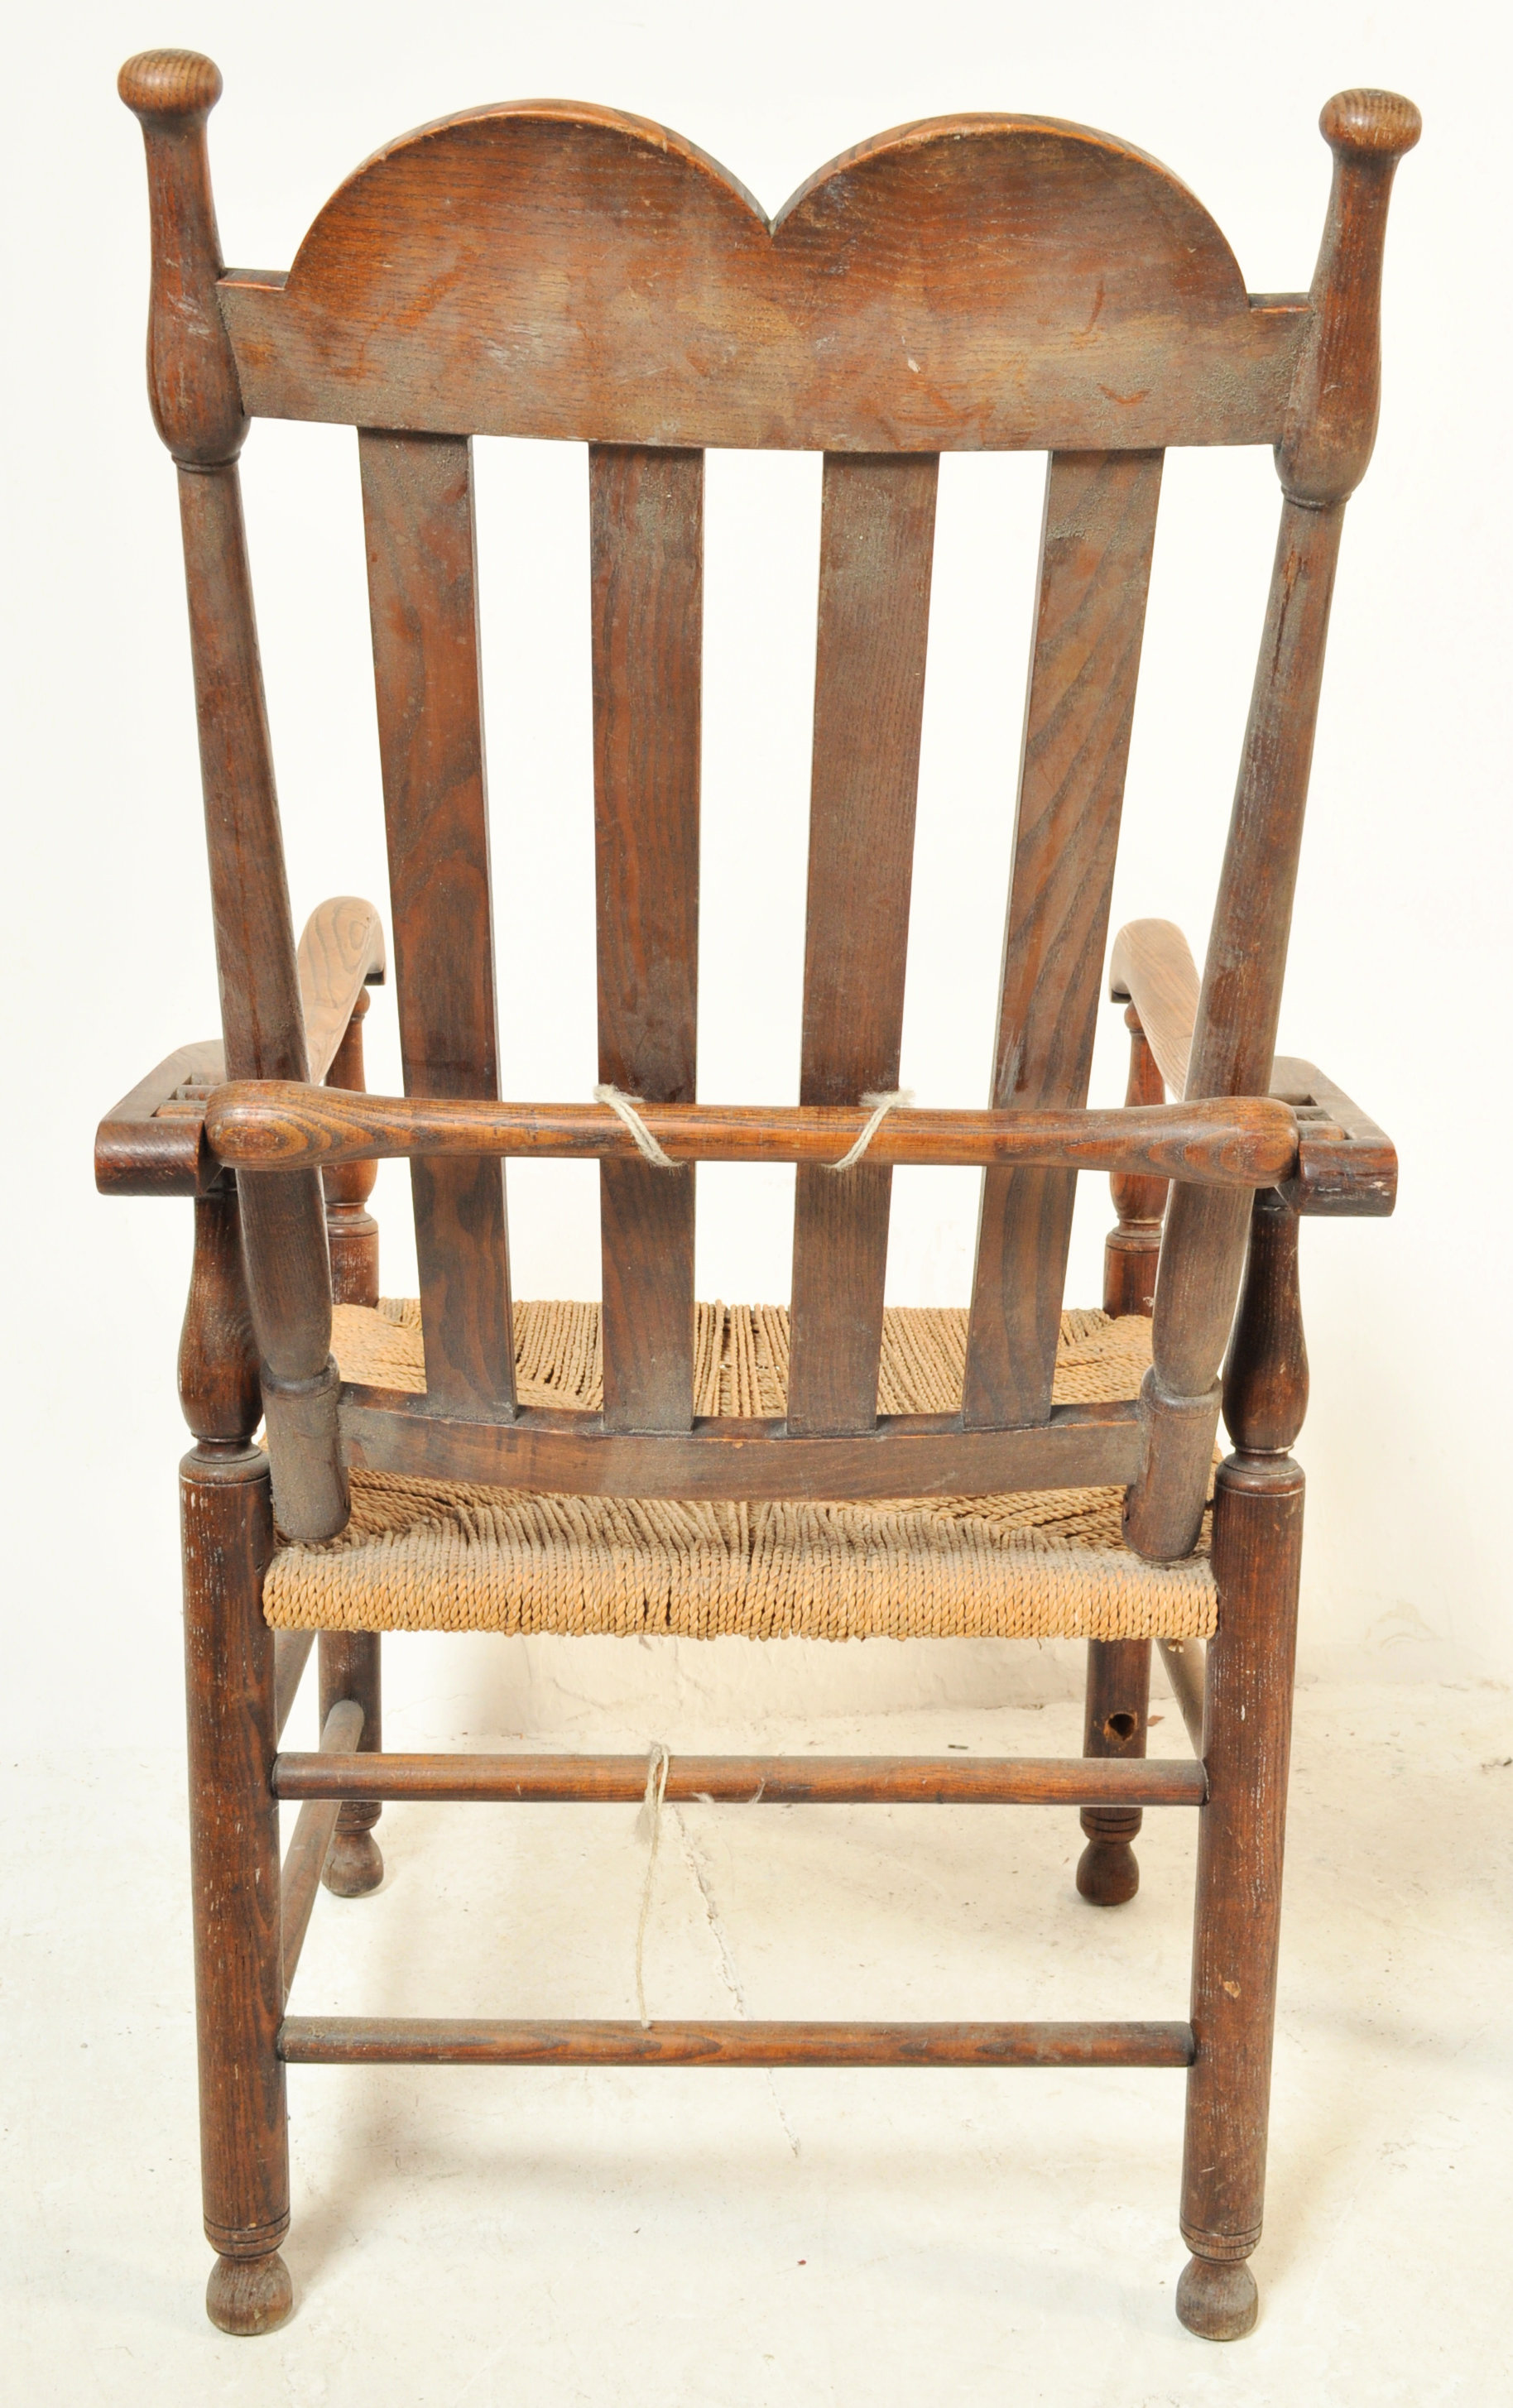 GEORGE II 18TH CENTURY RECLINING NORTH COUNTRY CHAIR WITH ANOTHER - Image 7 of 7